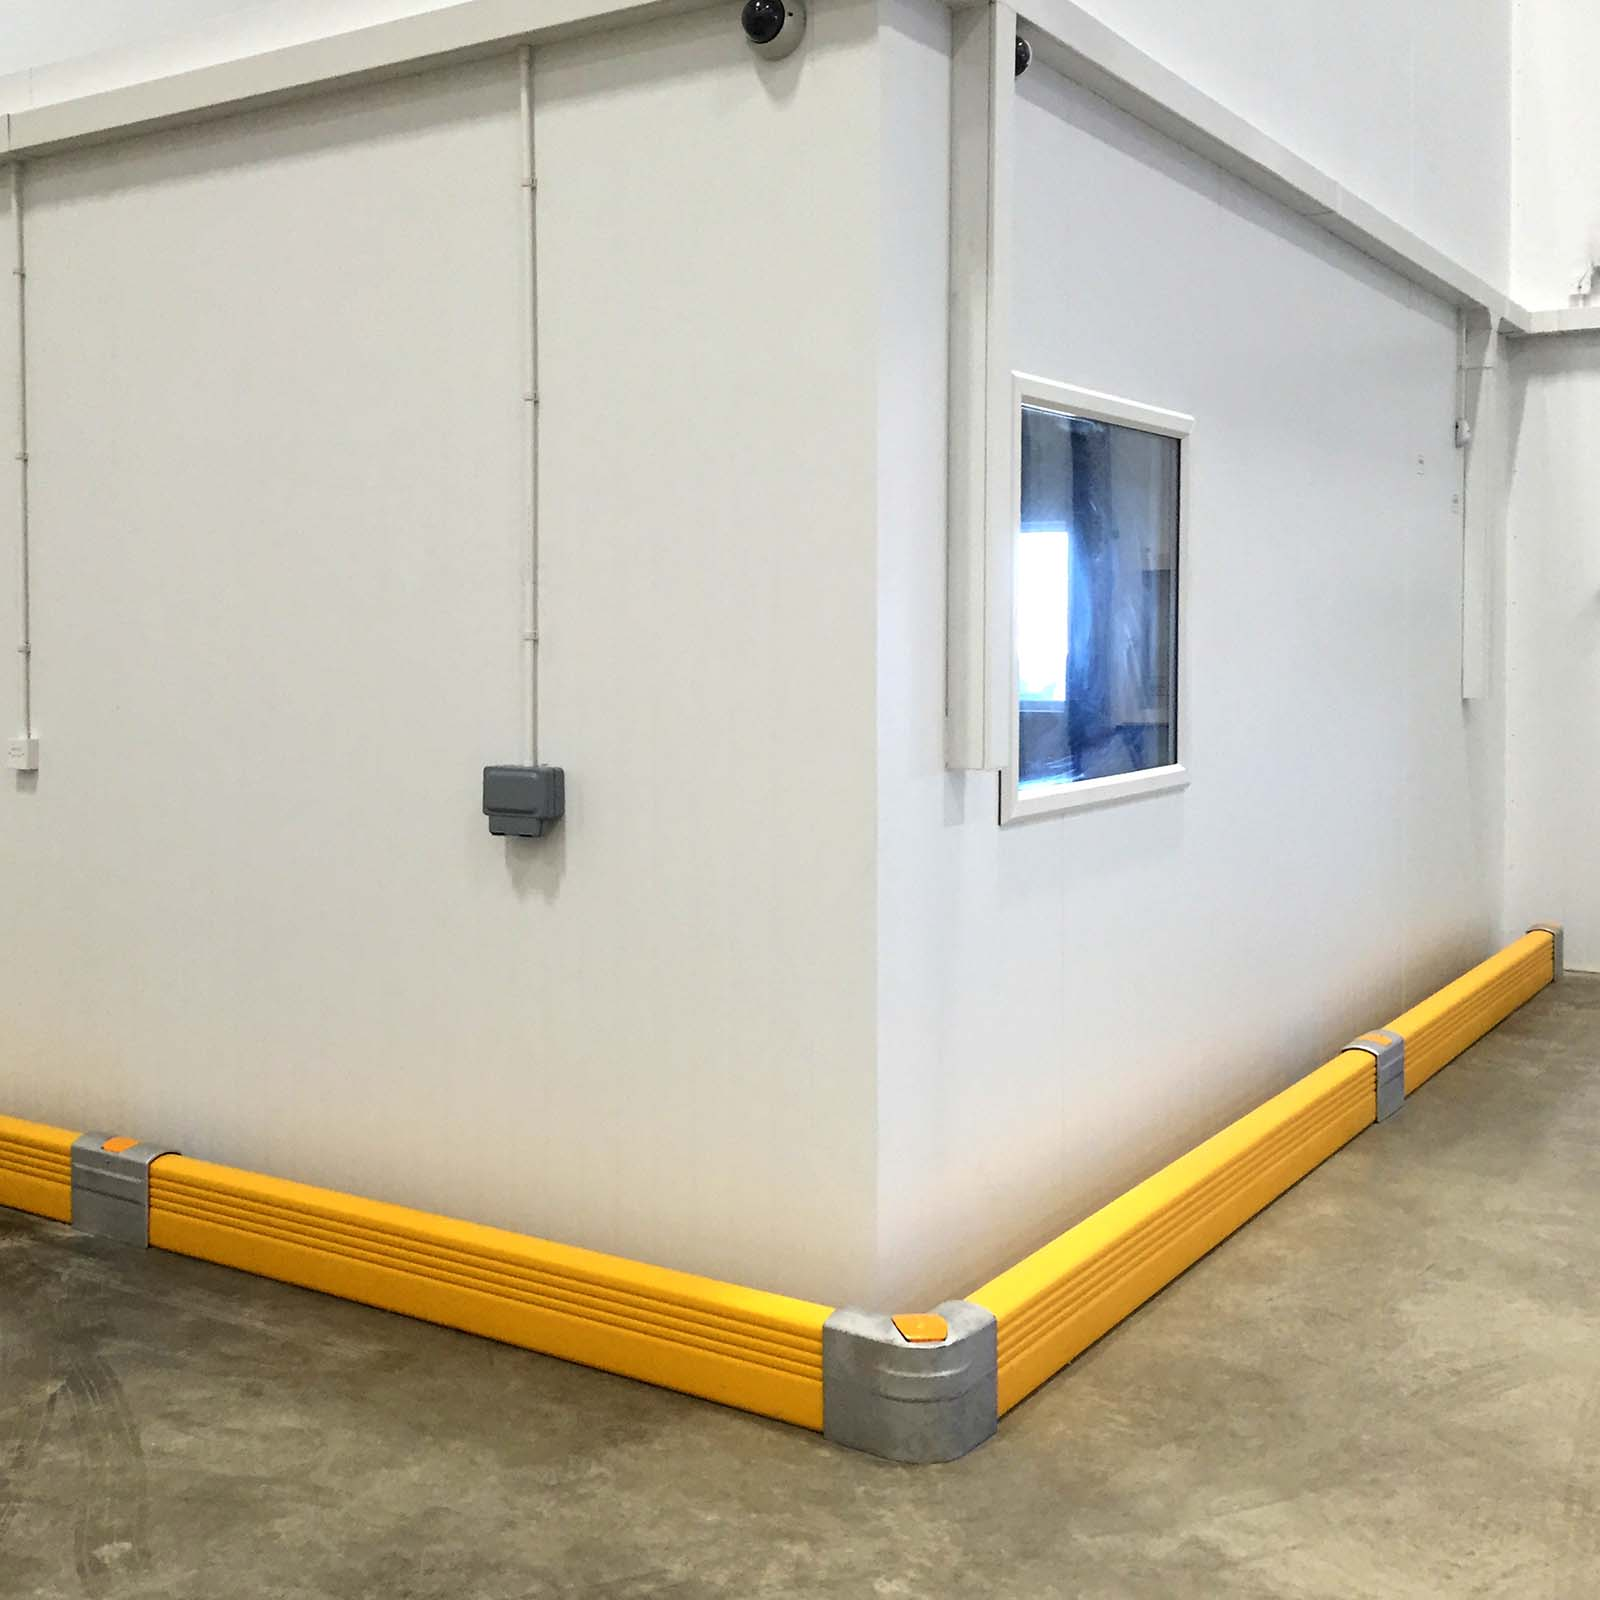 McCue Crash Barrier PLUS Safety Protection in warehouse